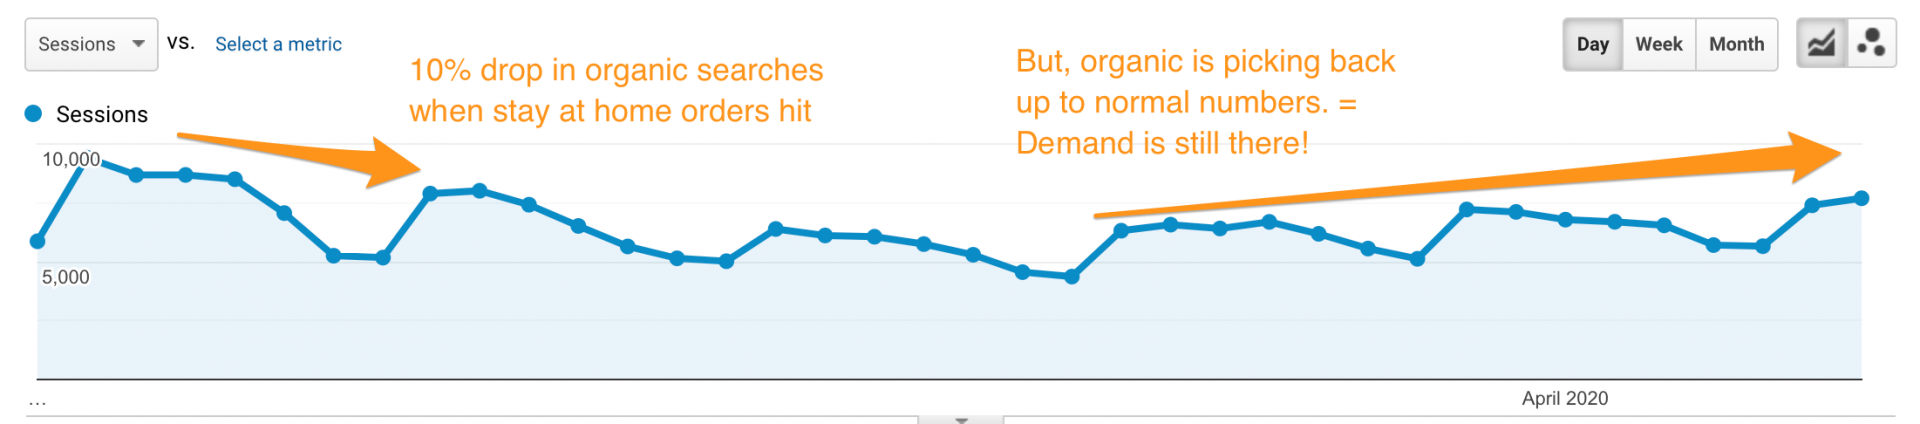 organic search volume rising after stay at home orders it